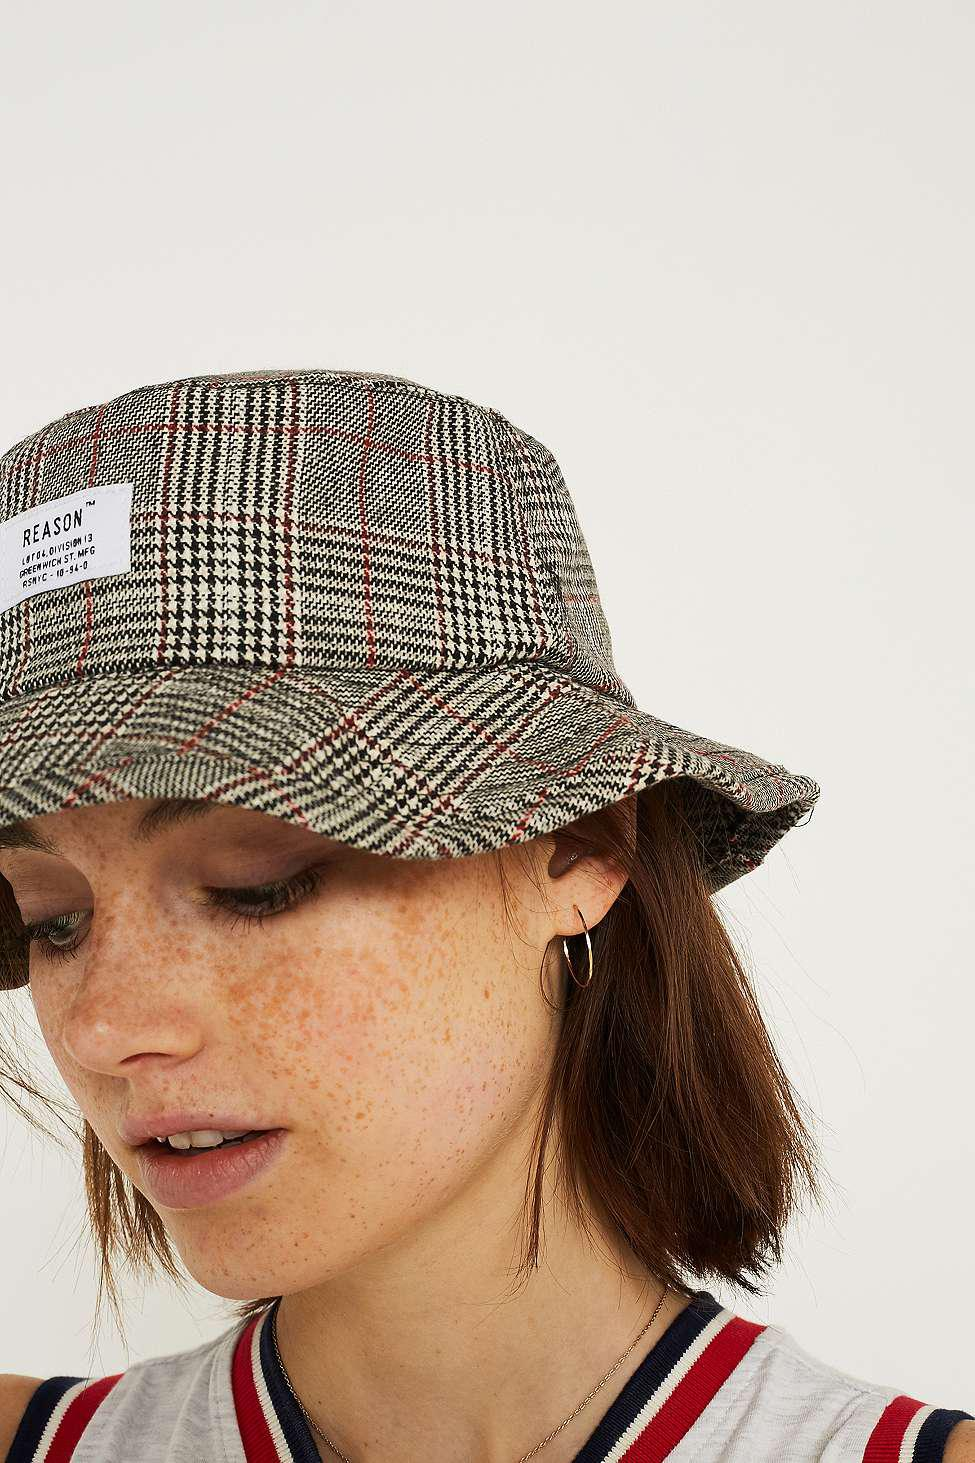 771f8b05c9ab3 Urban Outfitters Uo Reason Checked Bucket Hat - Womens All in Gray ...